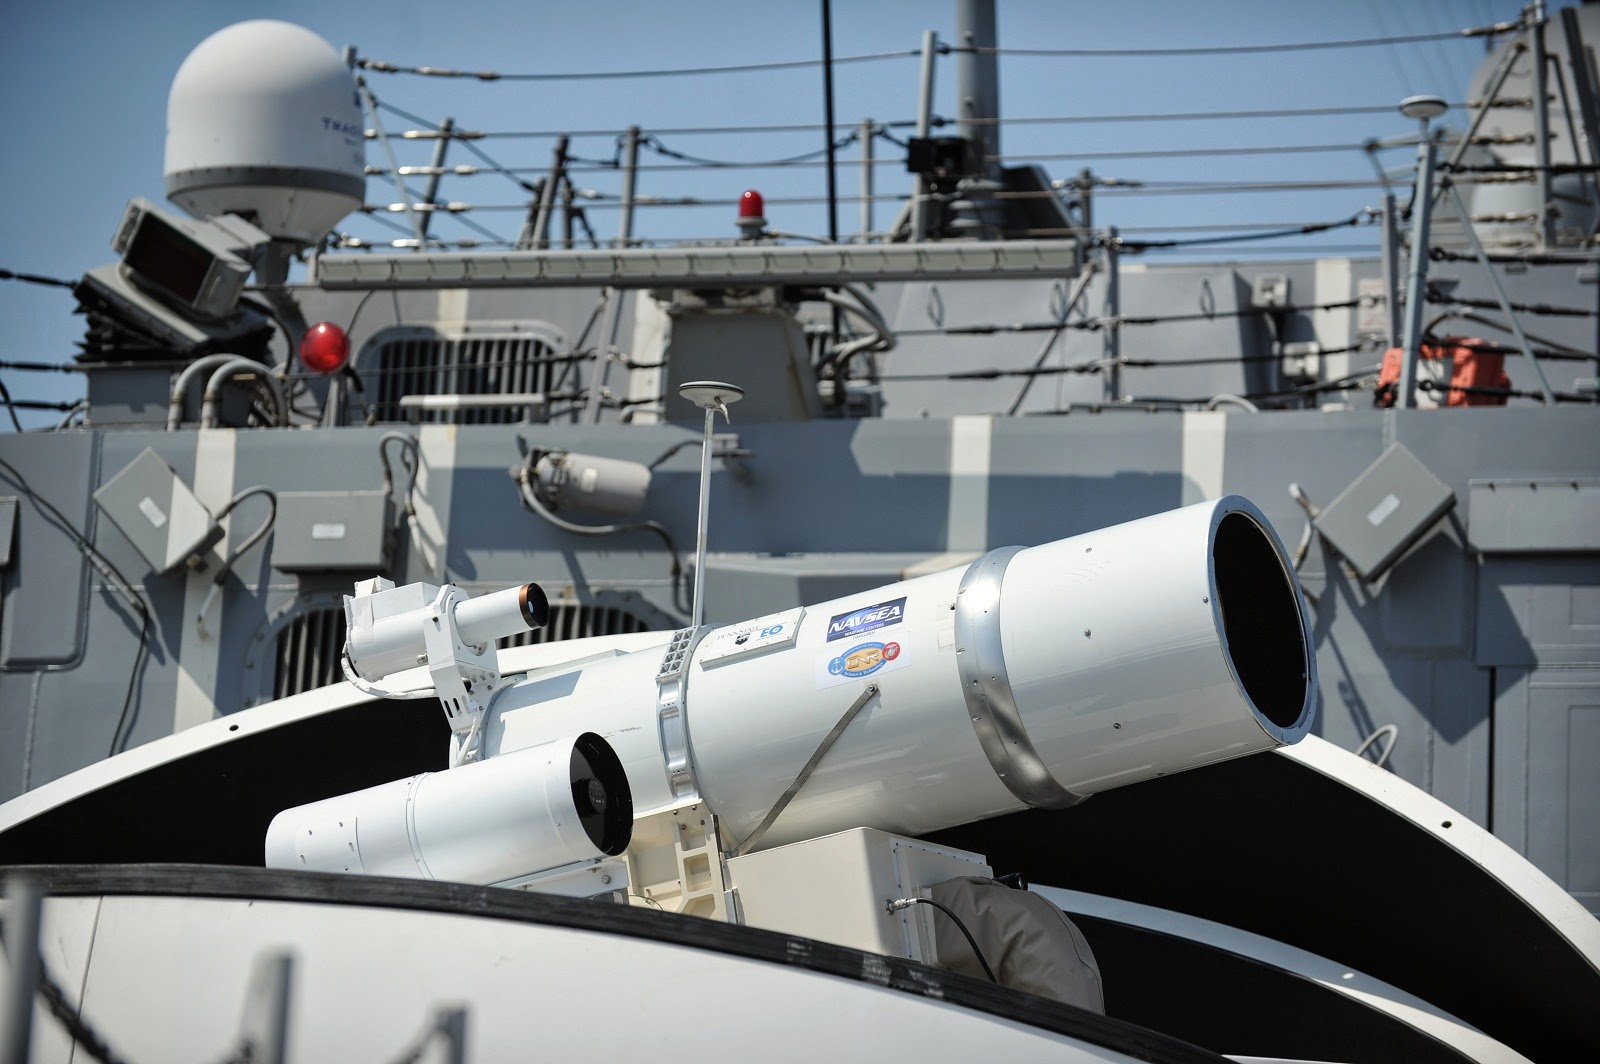 Naval Open Source INTelligence: Hi-tech laser, microwave